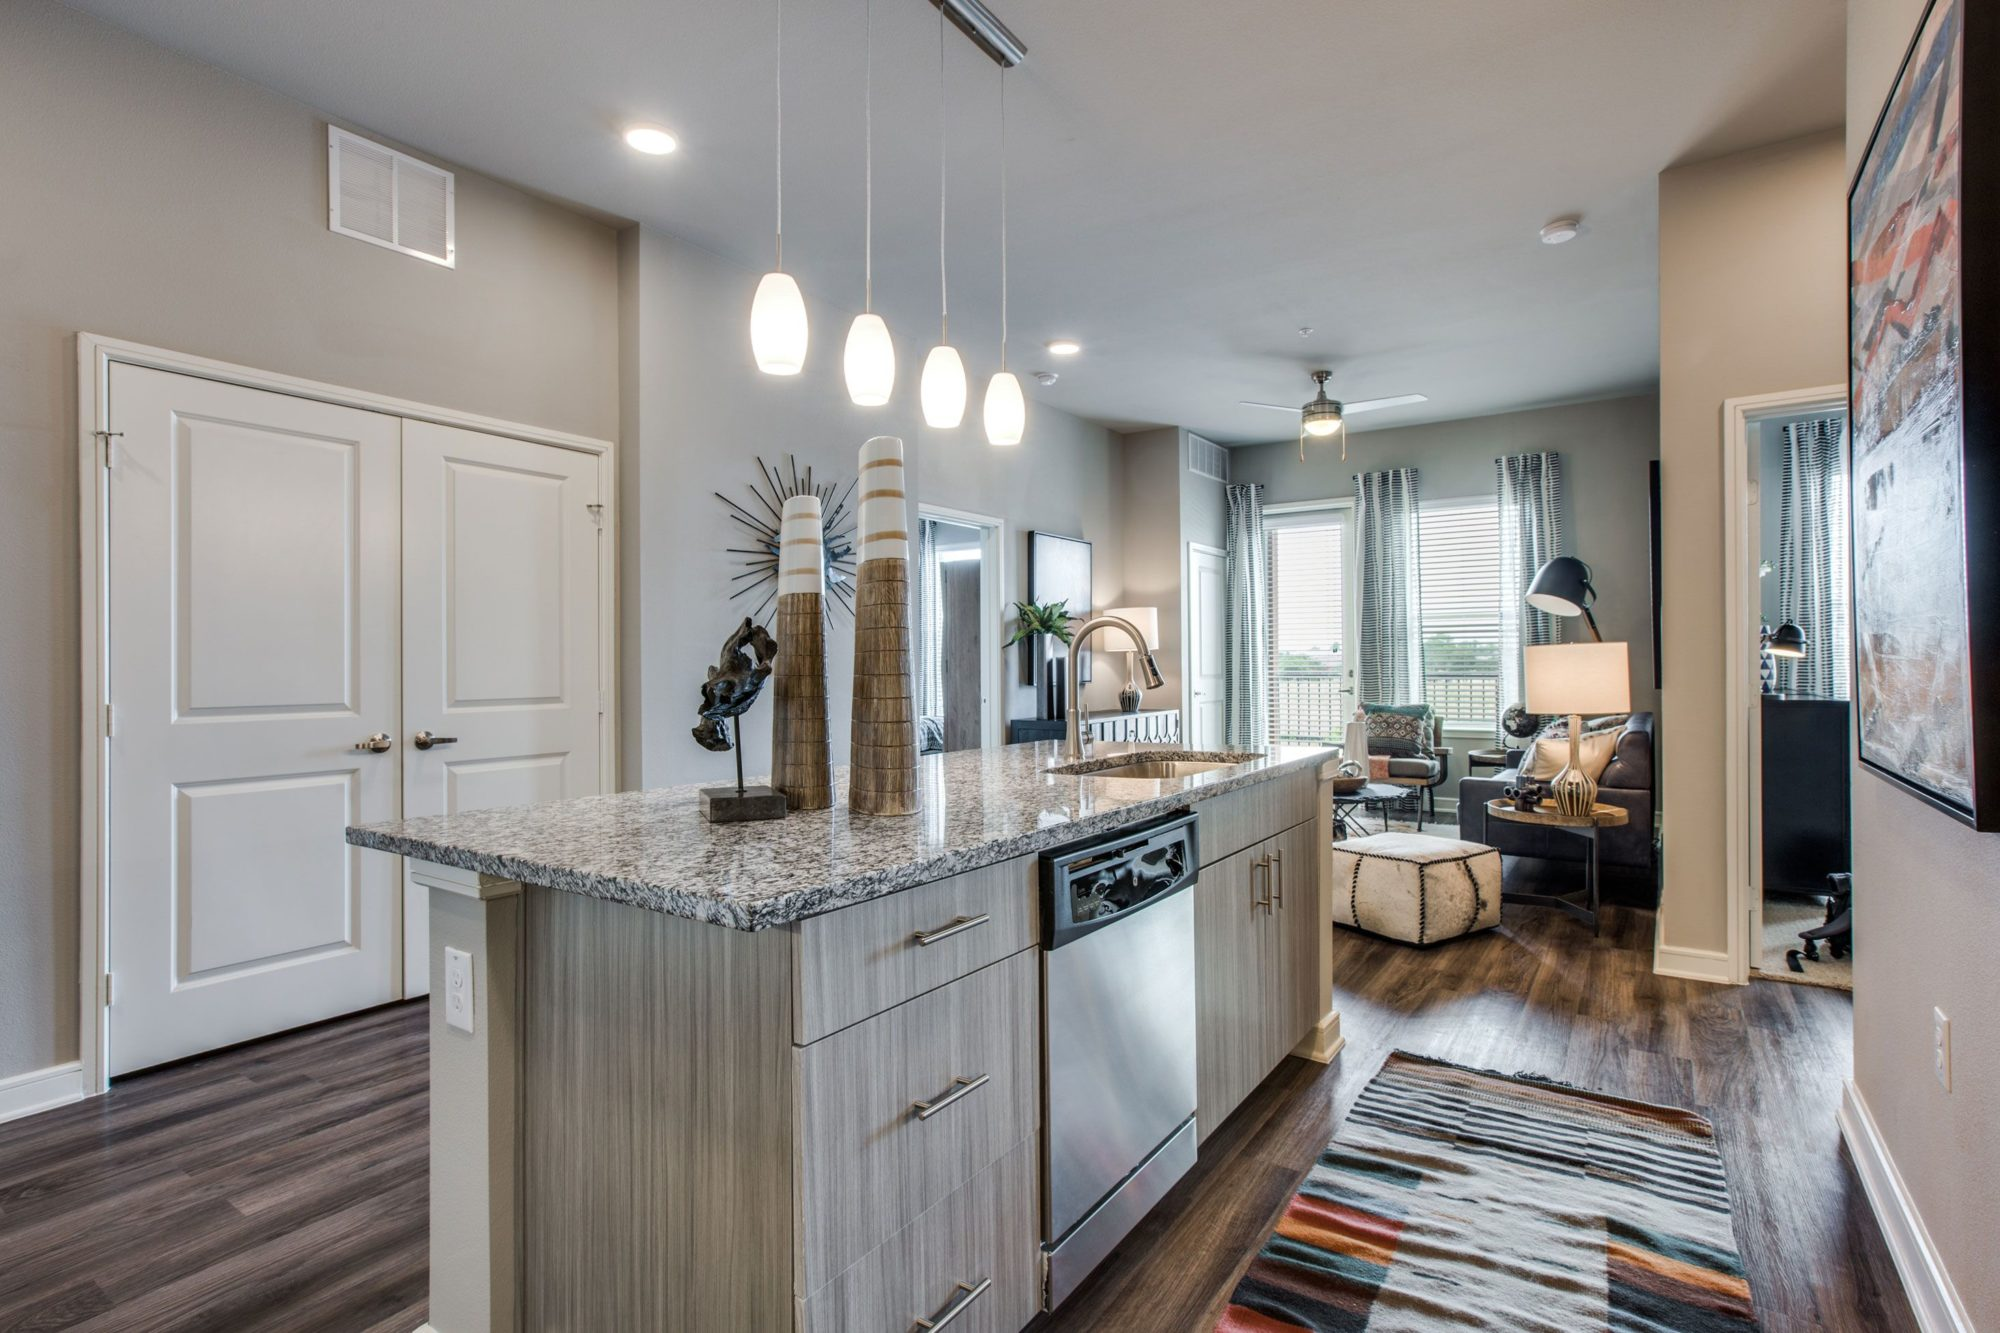 kitchen with island, dishwasher, wood cabinets, wood flooring, granite countertops, and view of living area